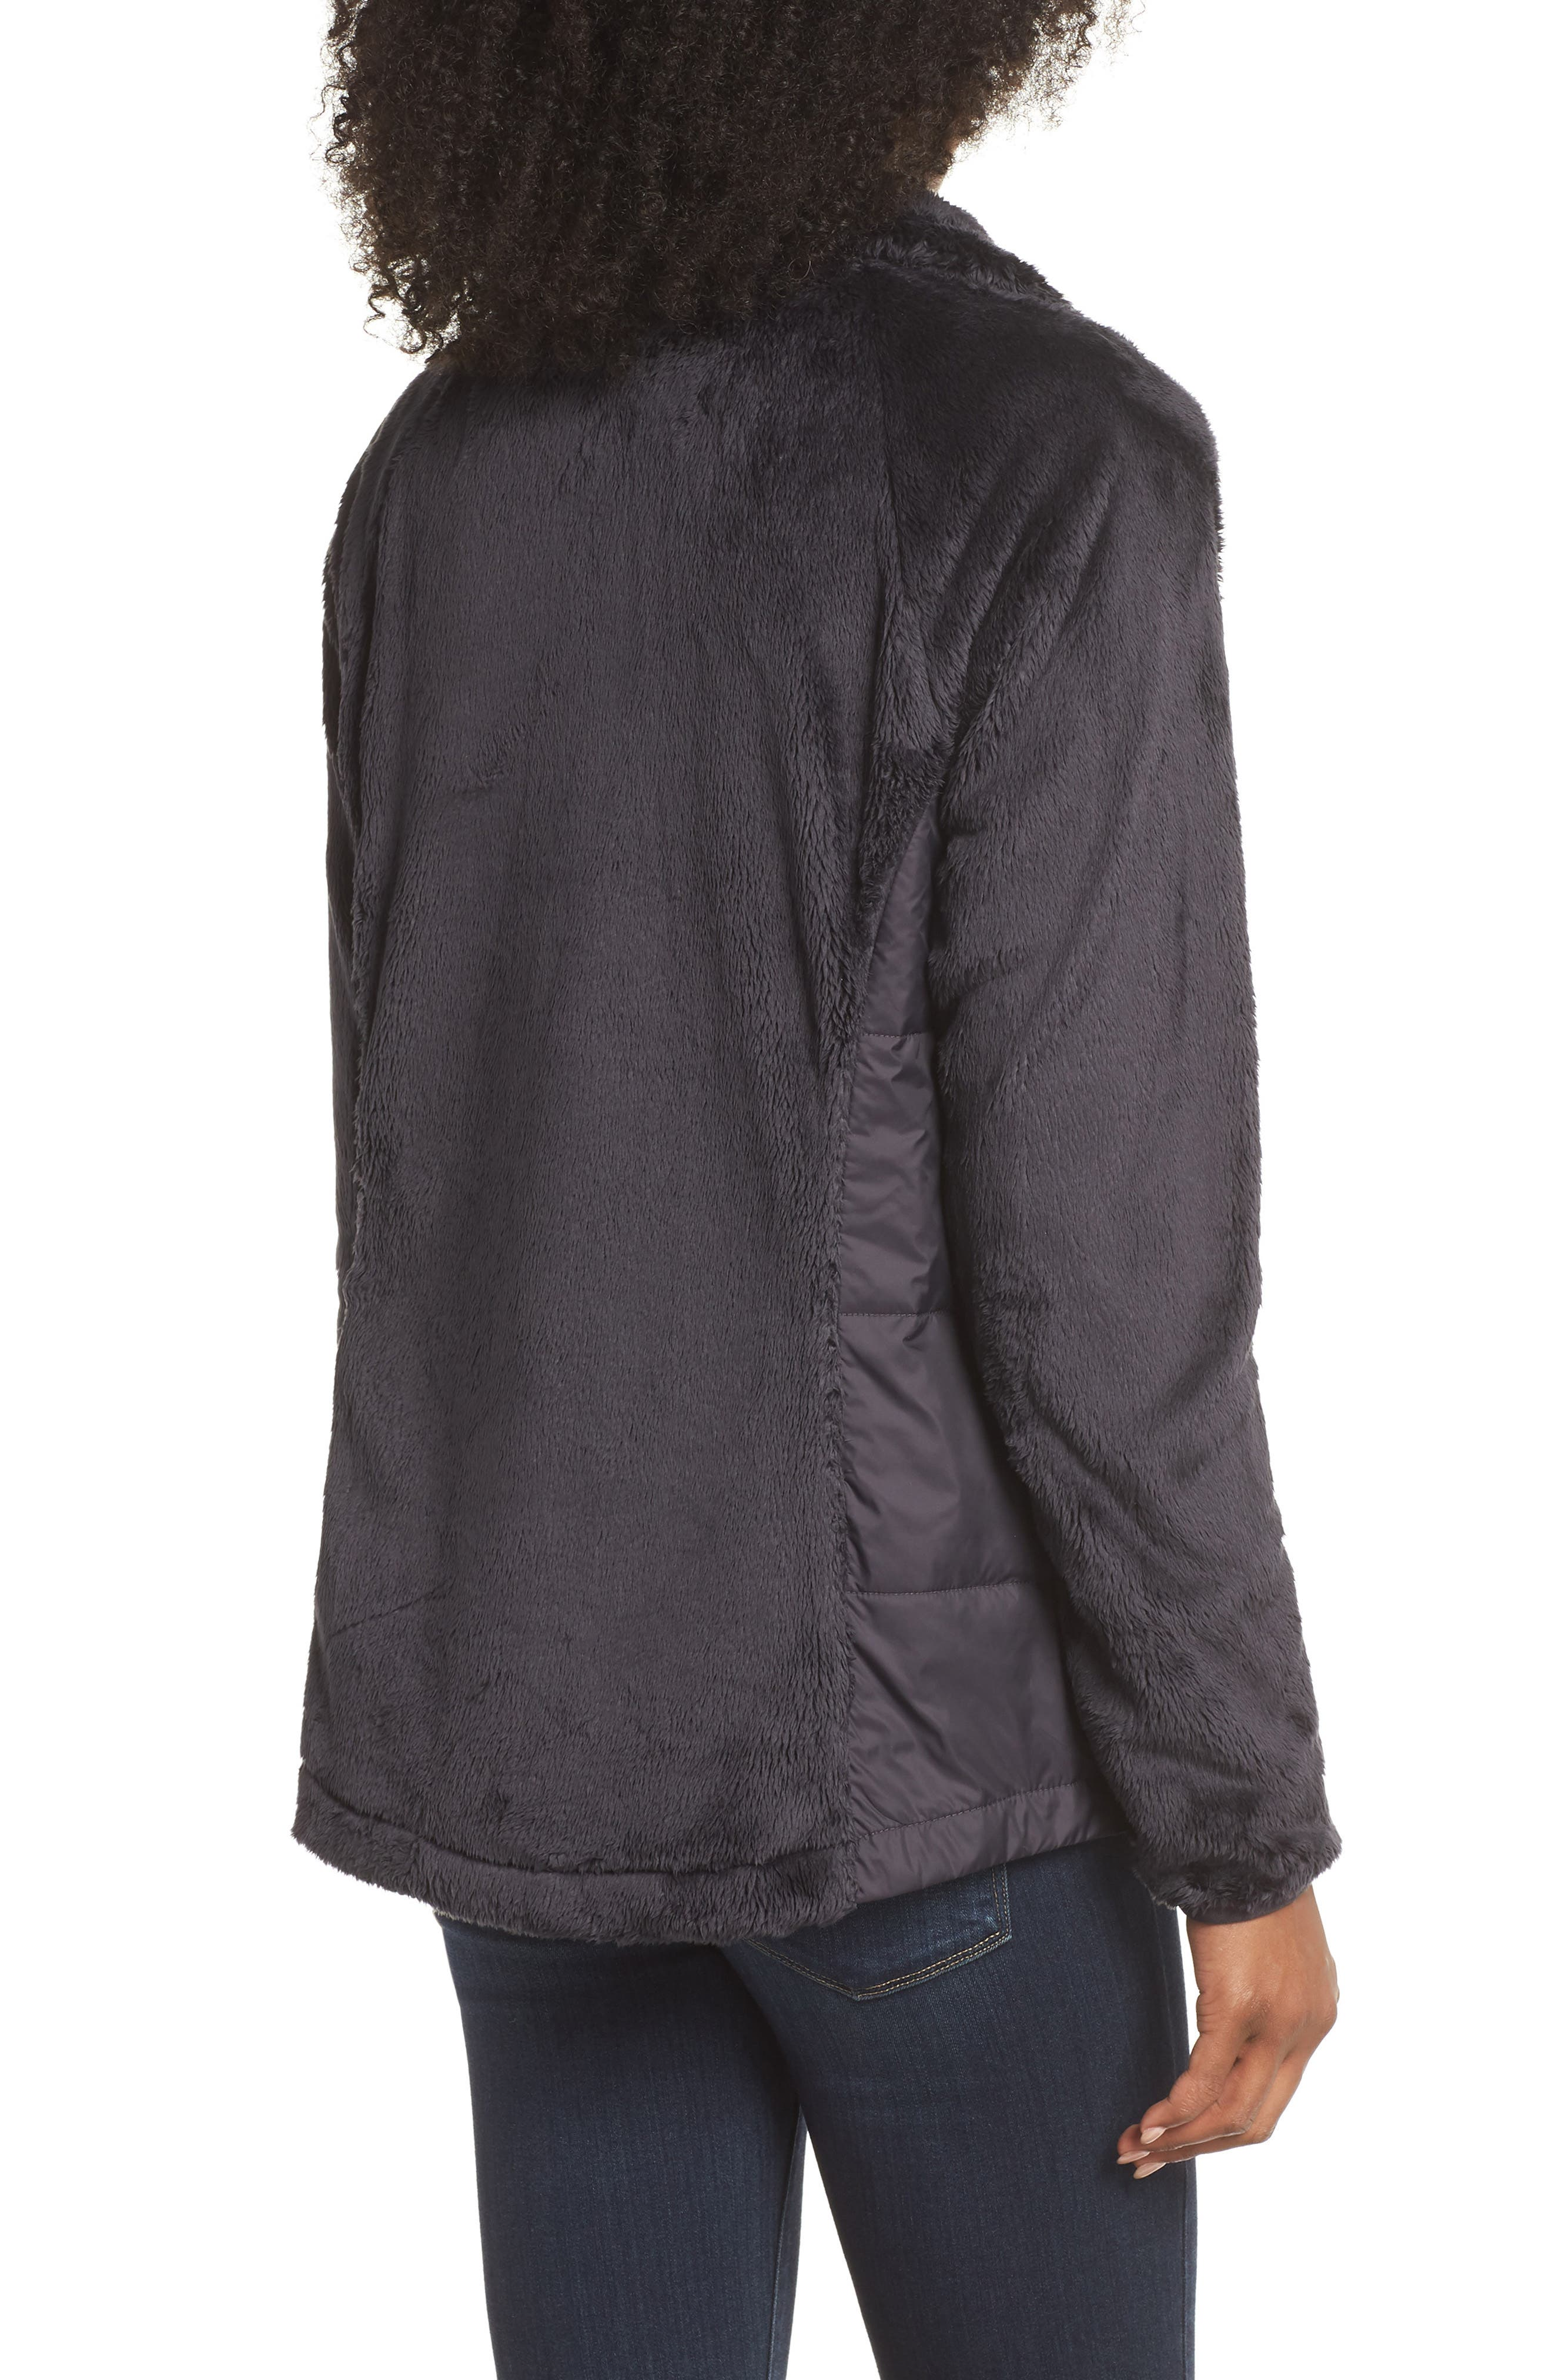 THE NORTH FACE, Osito Sport Hybrid Jacket, Alternate thumbnail 2, color, WEATHERED BLACK